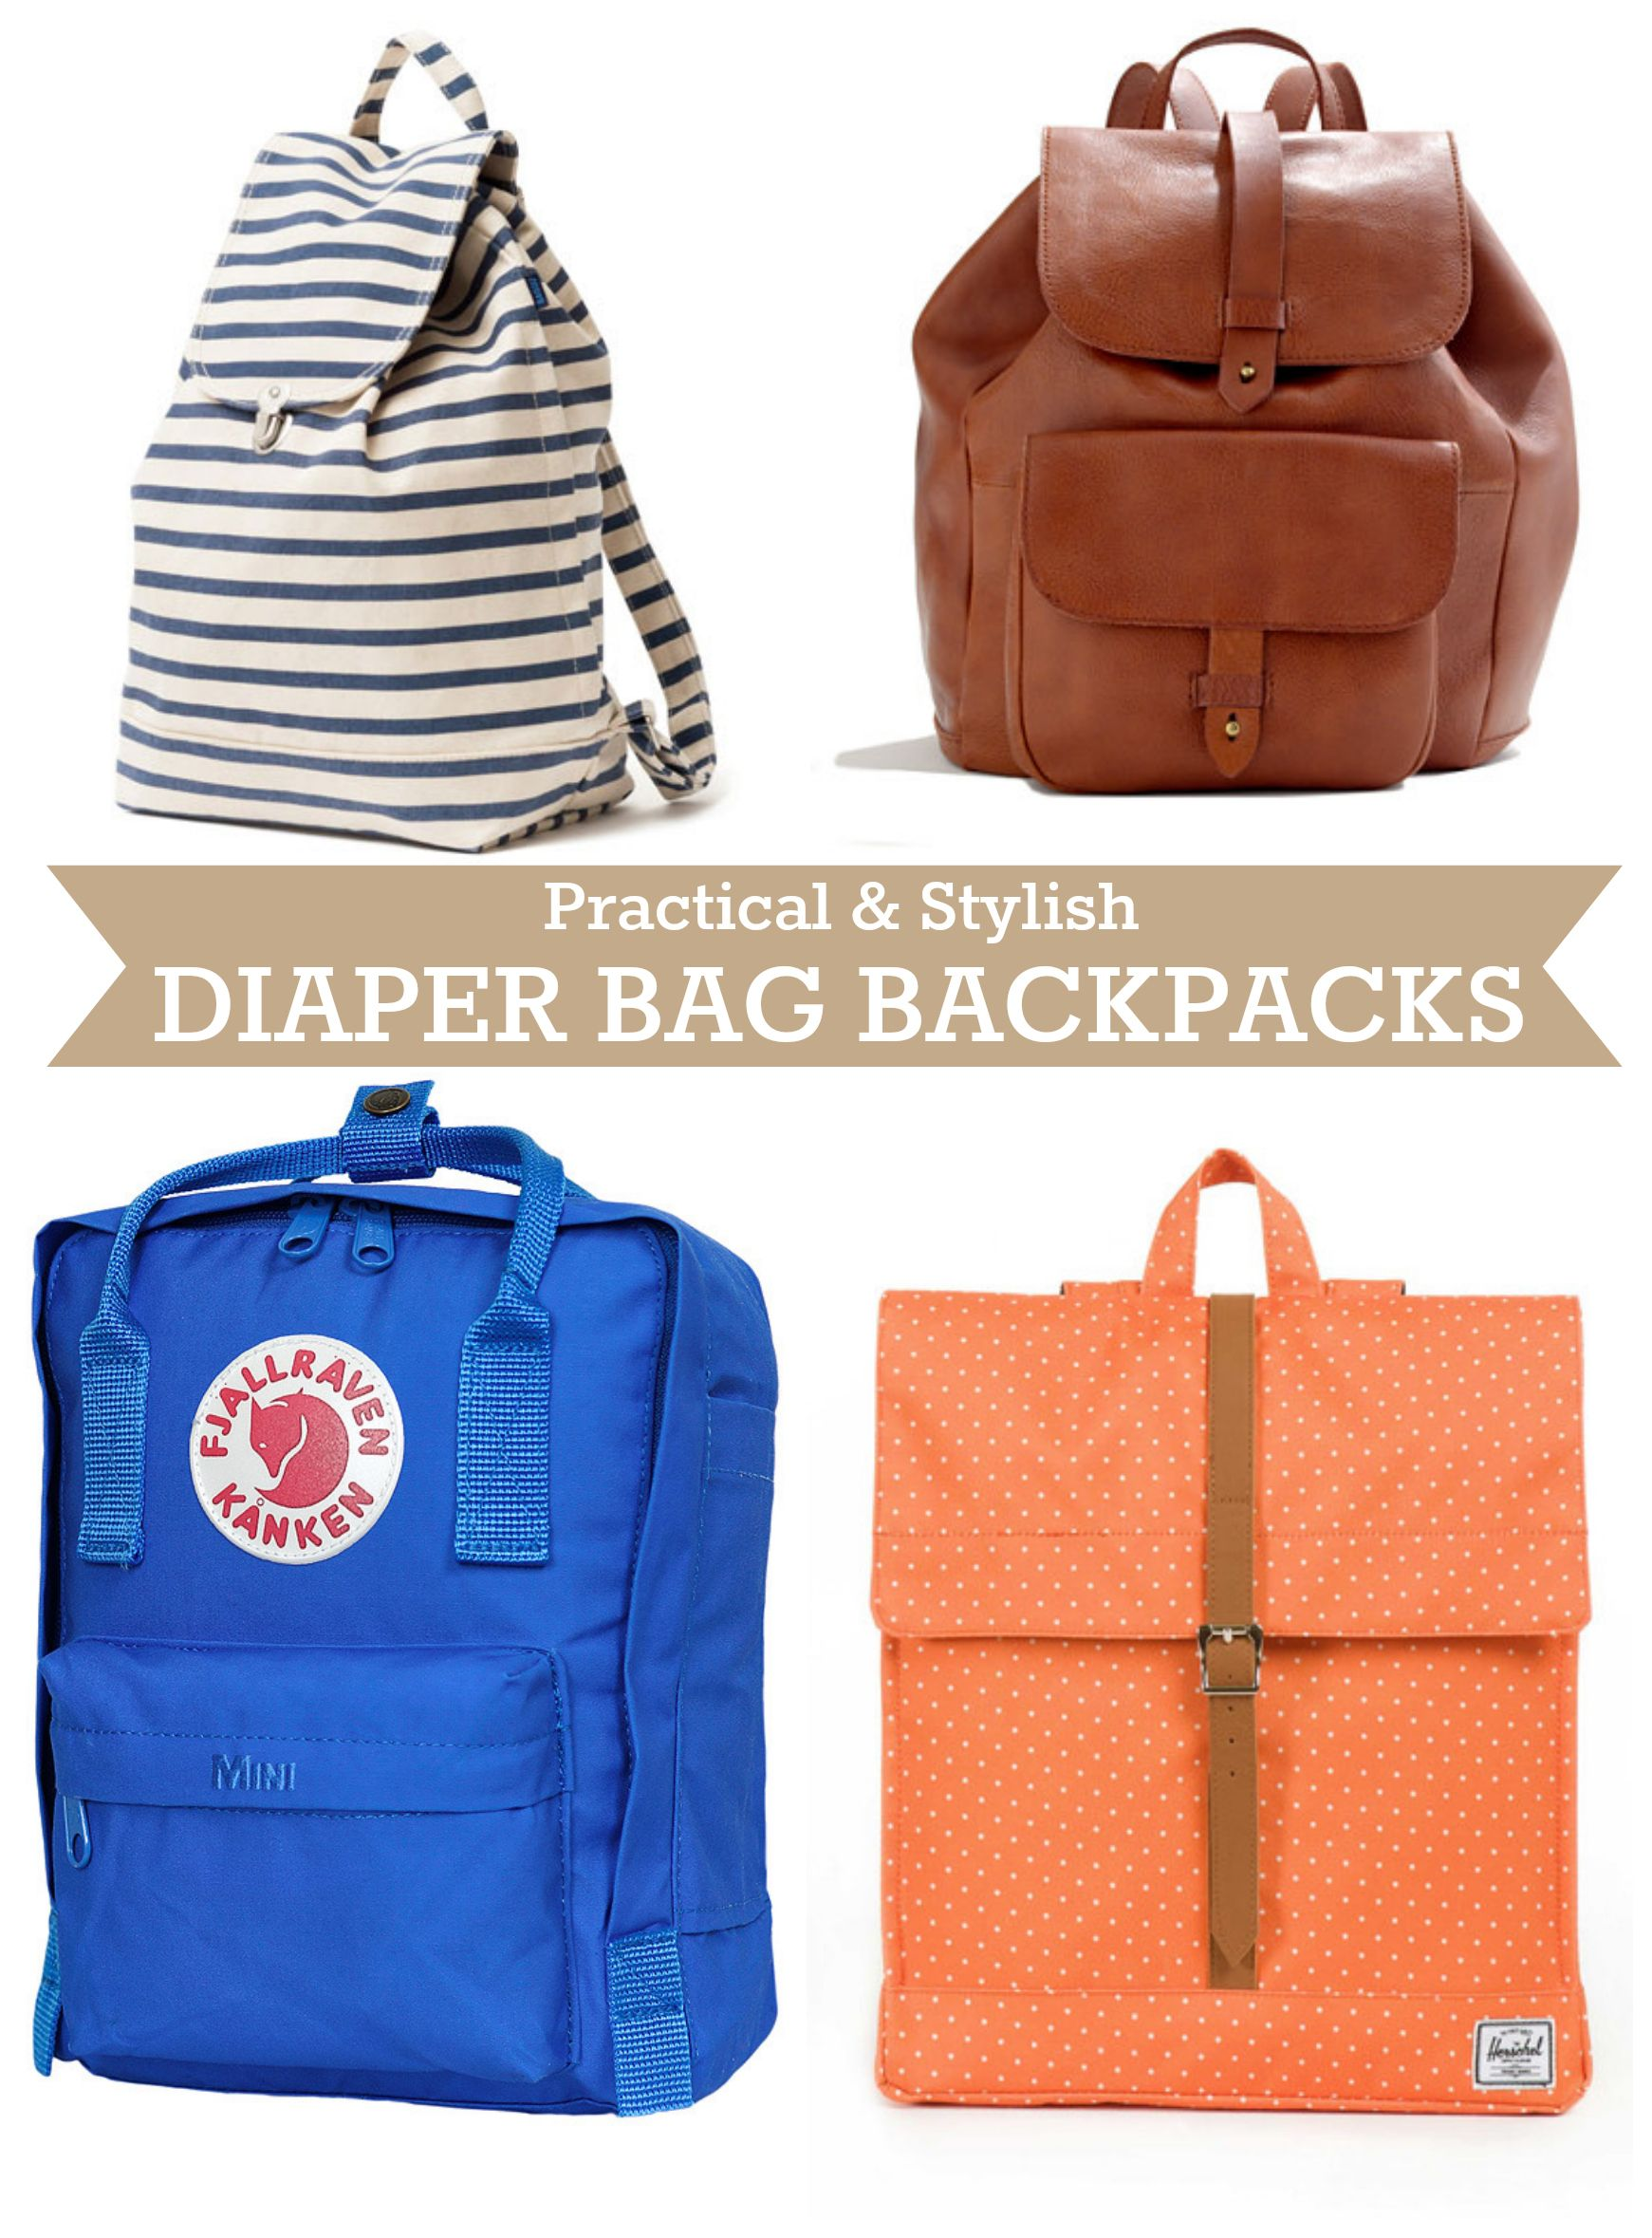 best fashion diaper bags gold watches for women michael kors. Black Bedroom Furniture Sets. Home Design Ideas